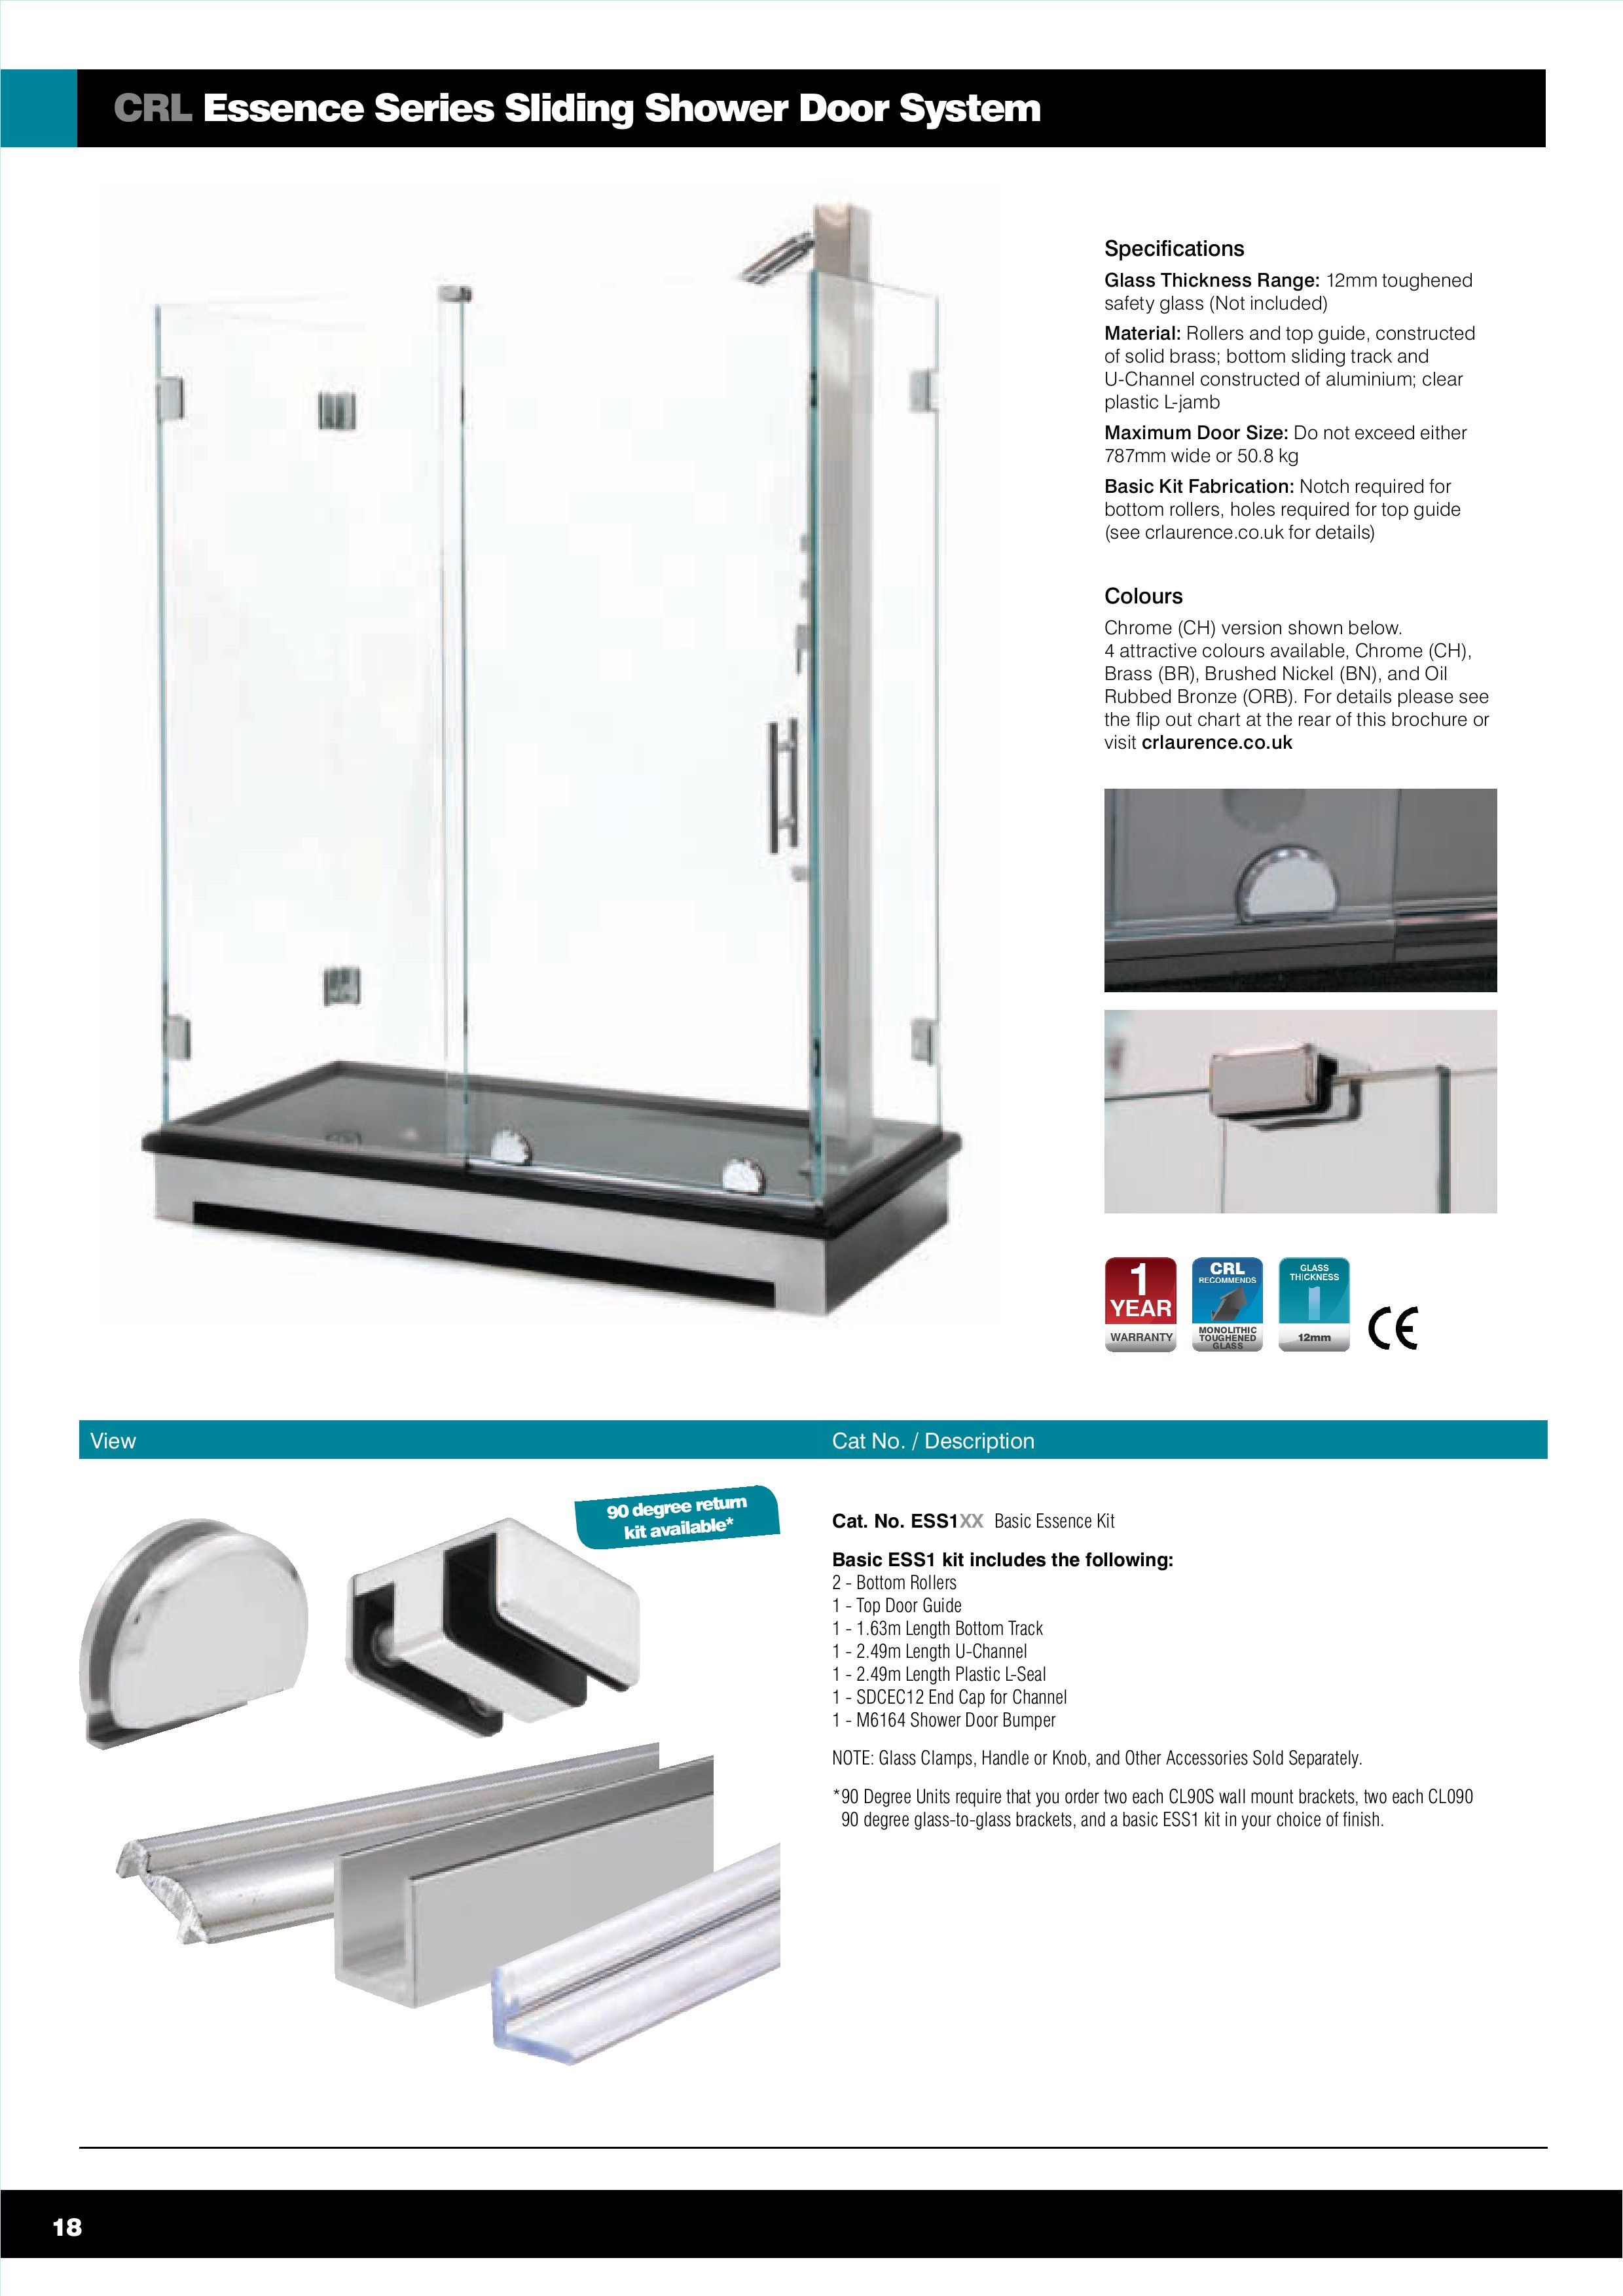 Create Your Perfect Bathroom With Our Extensive Range Of Shower Hardware And Accessories Shower Door Handles Glass Shower Enclosures Door Fittings